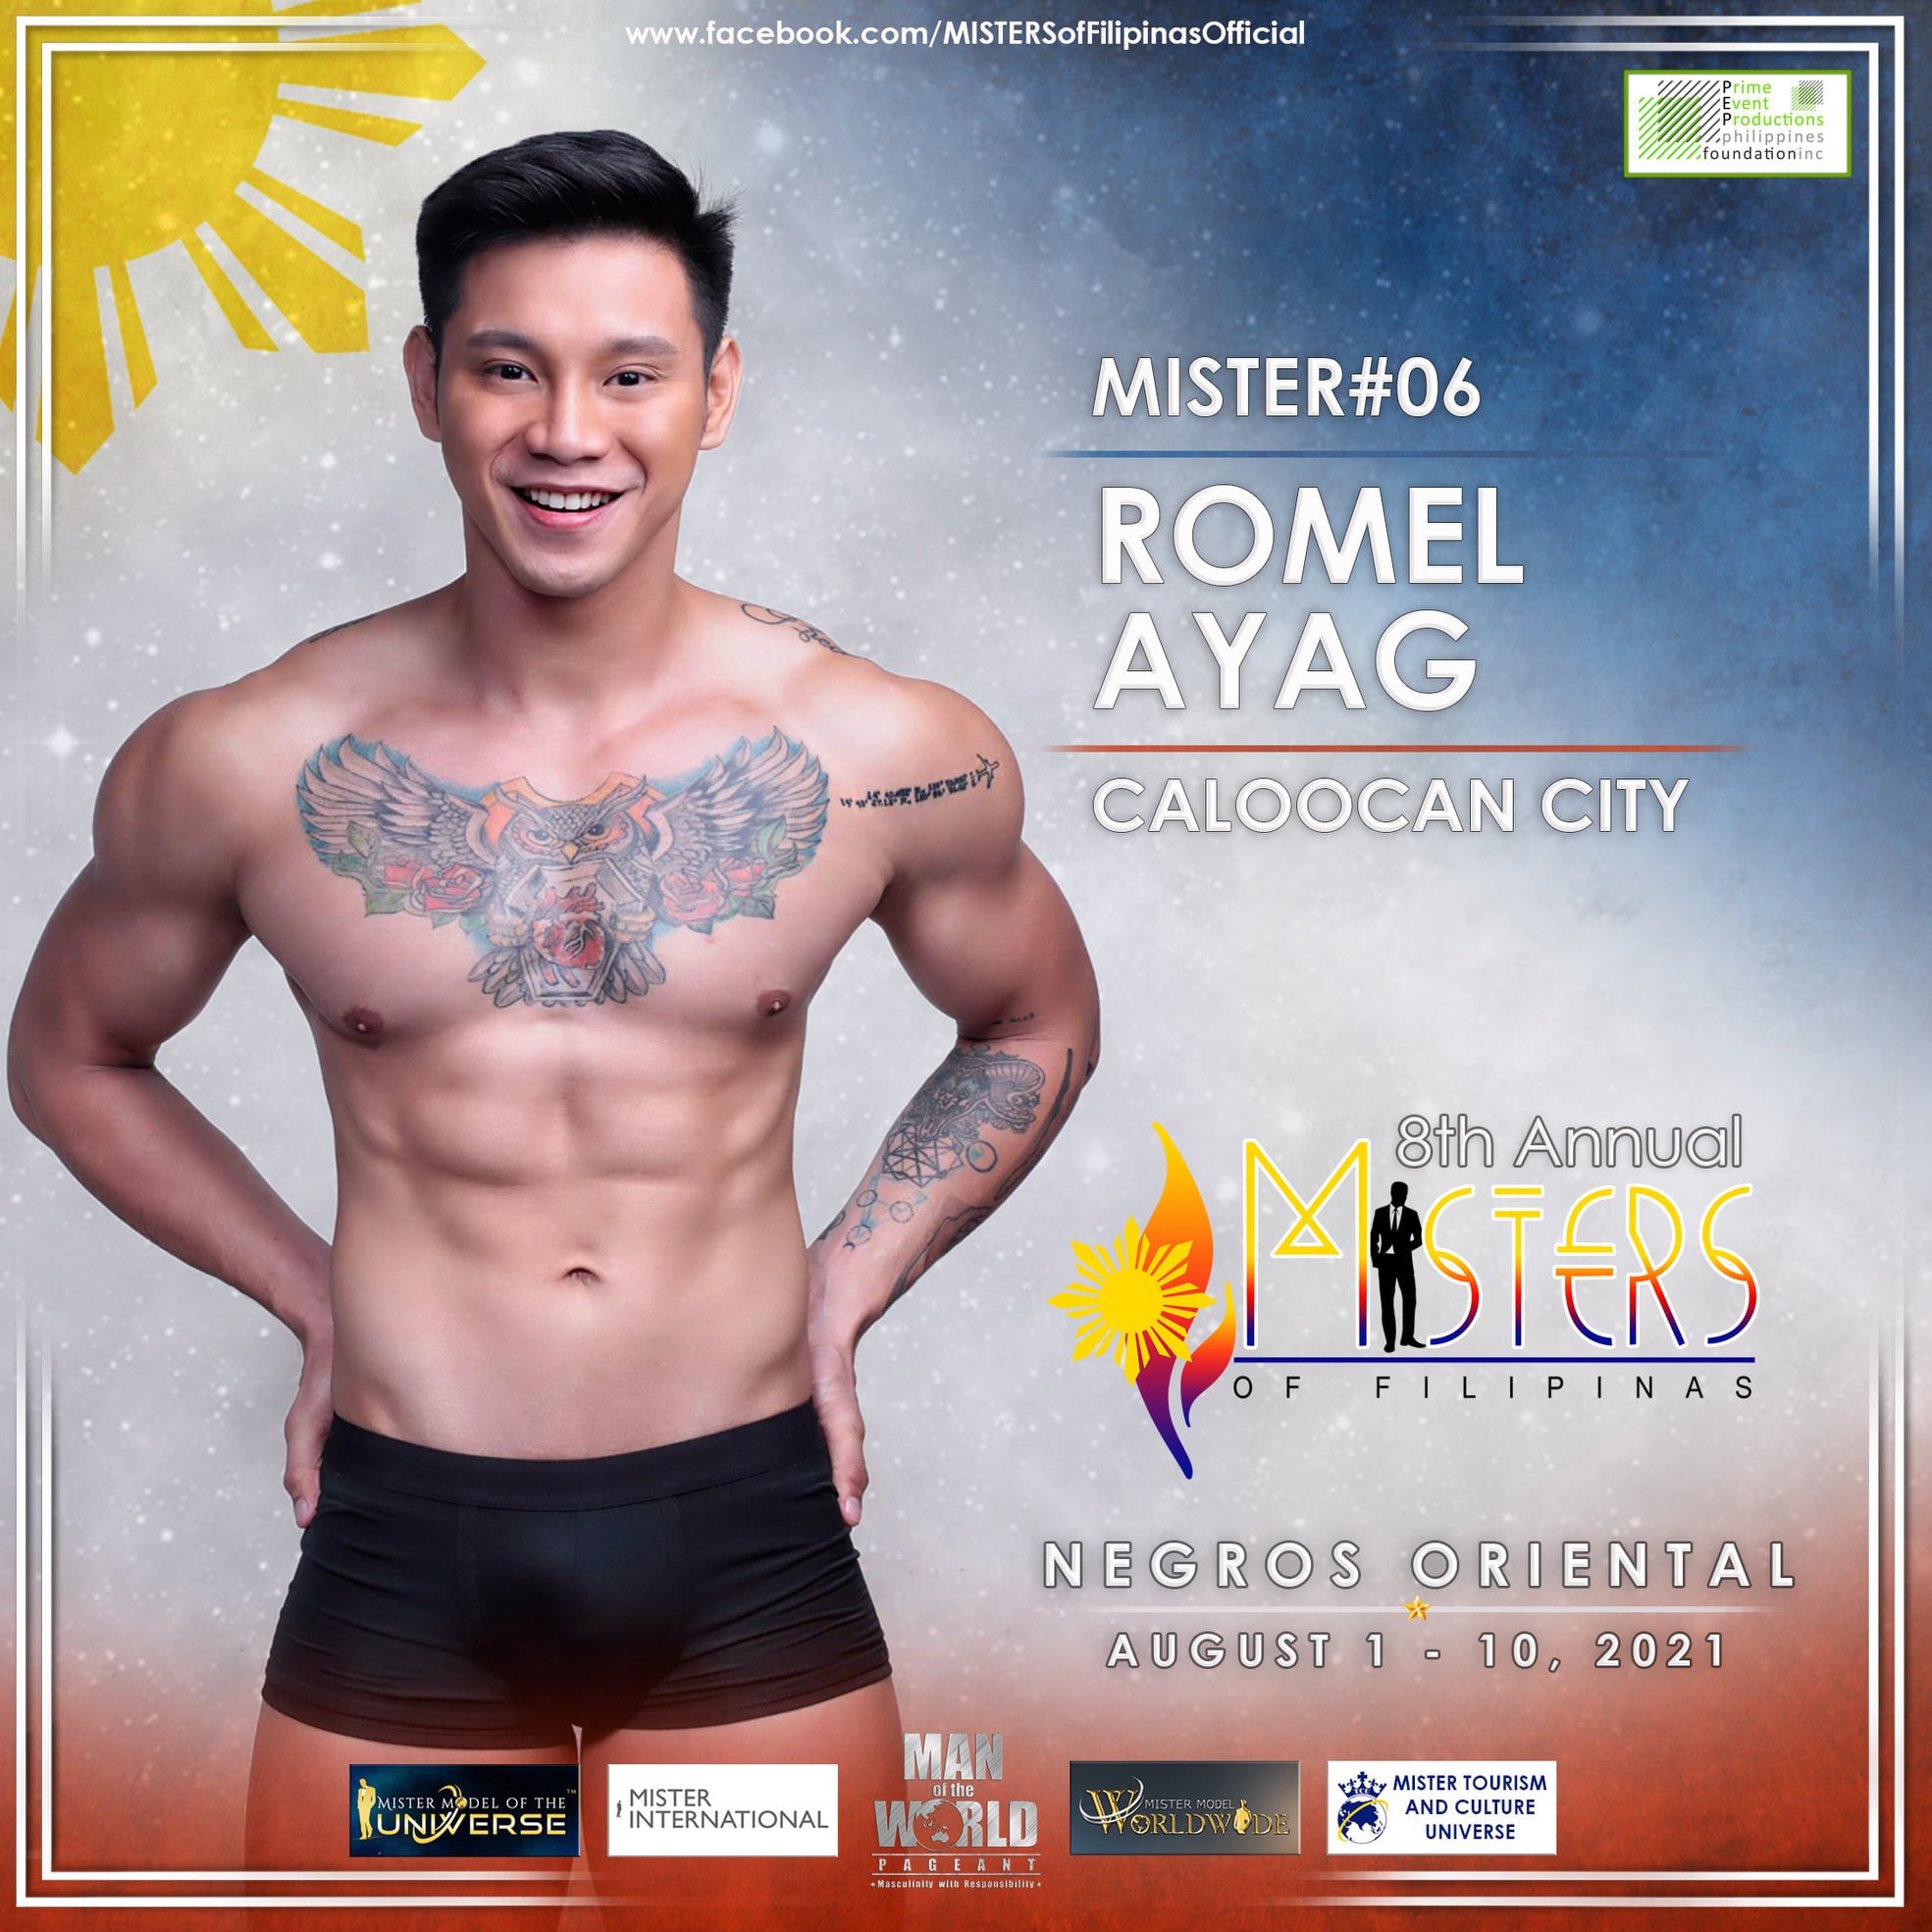 candidatos a misters of filipinas 2021. final: 27 agosto. OwqRGp